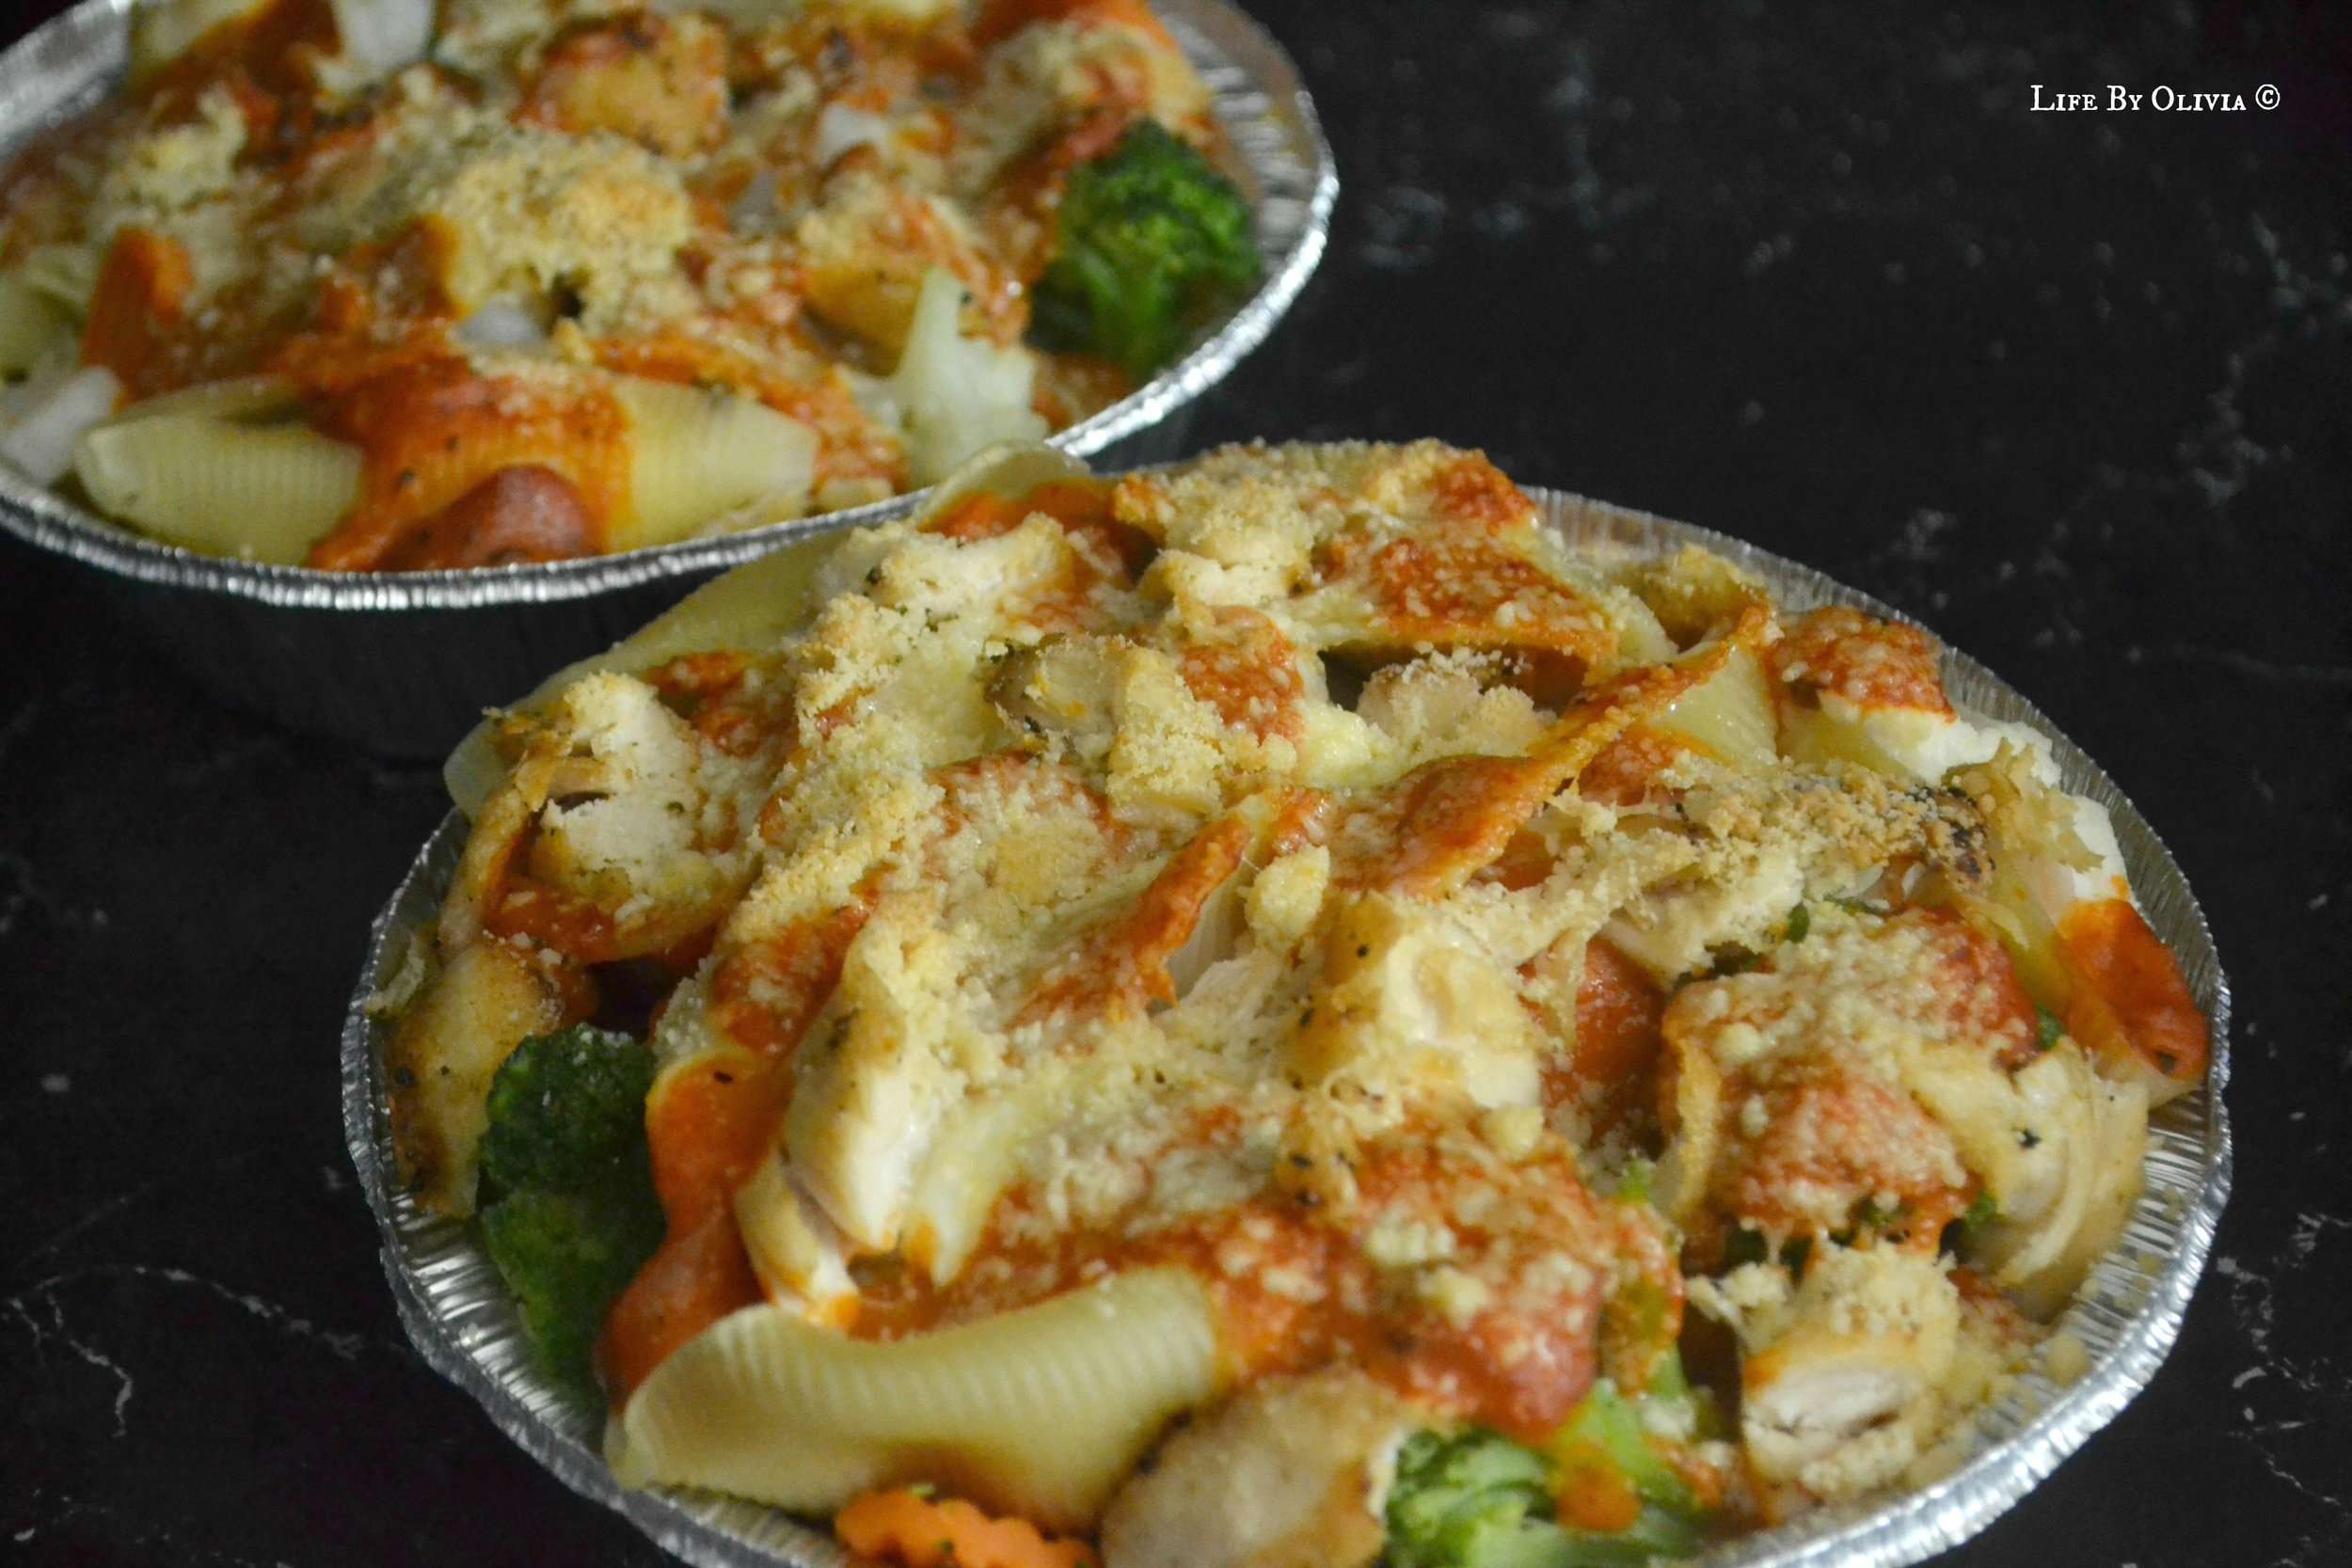 Chicken and Shrimp Stuffed Shells  -  This recipe was sooooo good, I can't believe it took so long for me to share it with you guys! If you're looking for the perfect Valentine's Day/Anniversary/Date Night recipe, try this one and your lover will definitely be impressed!